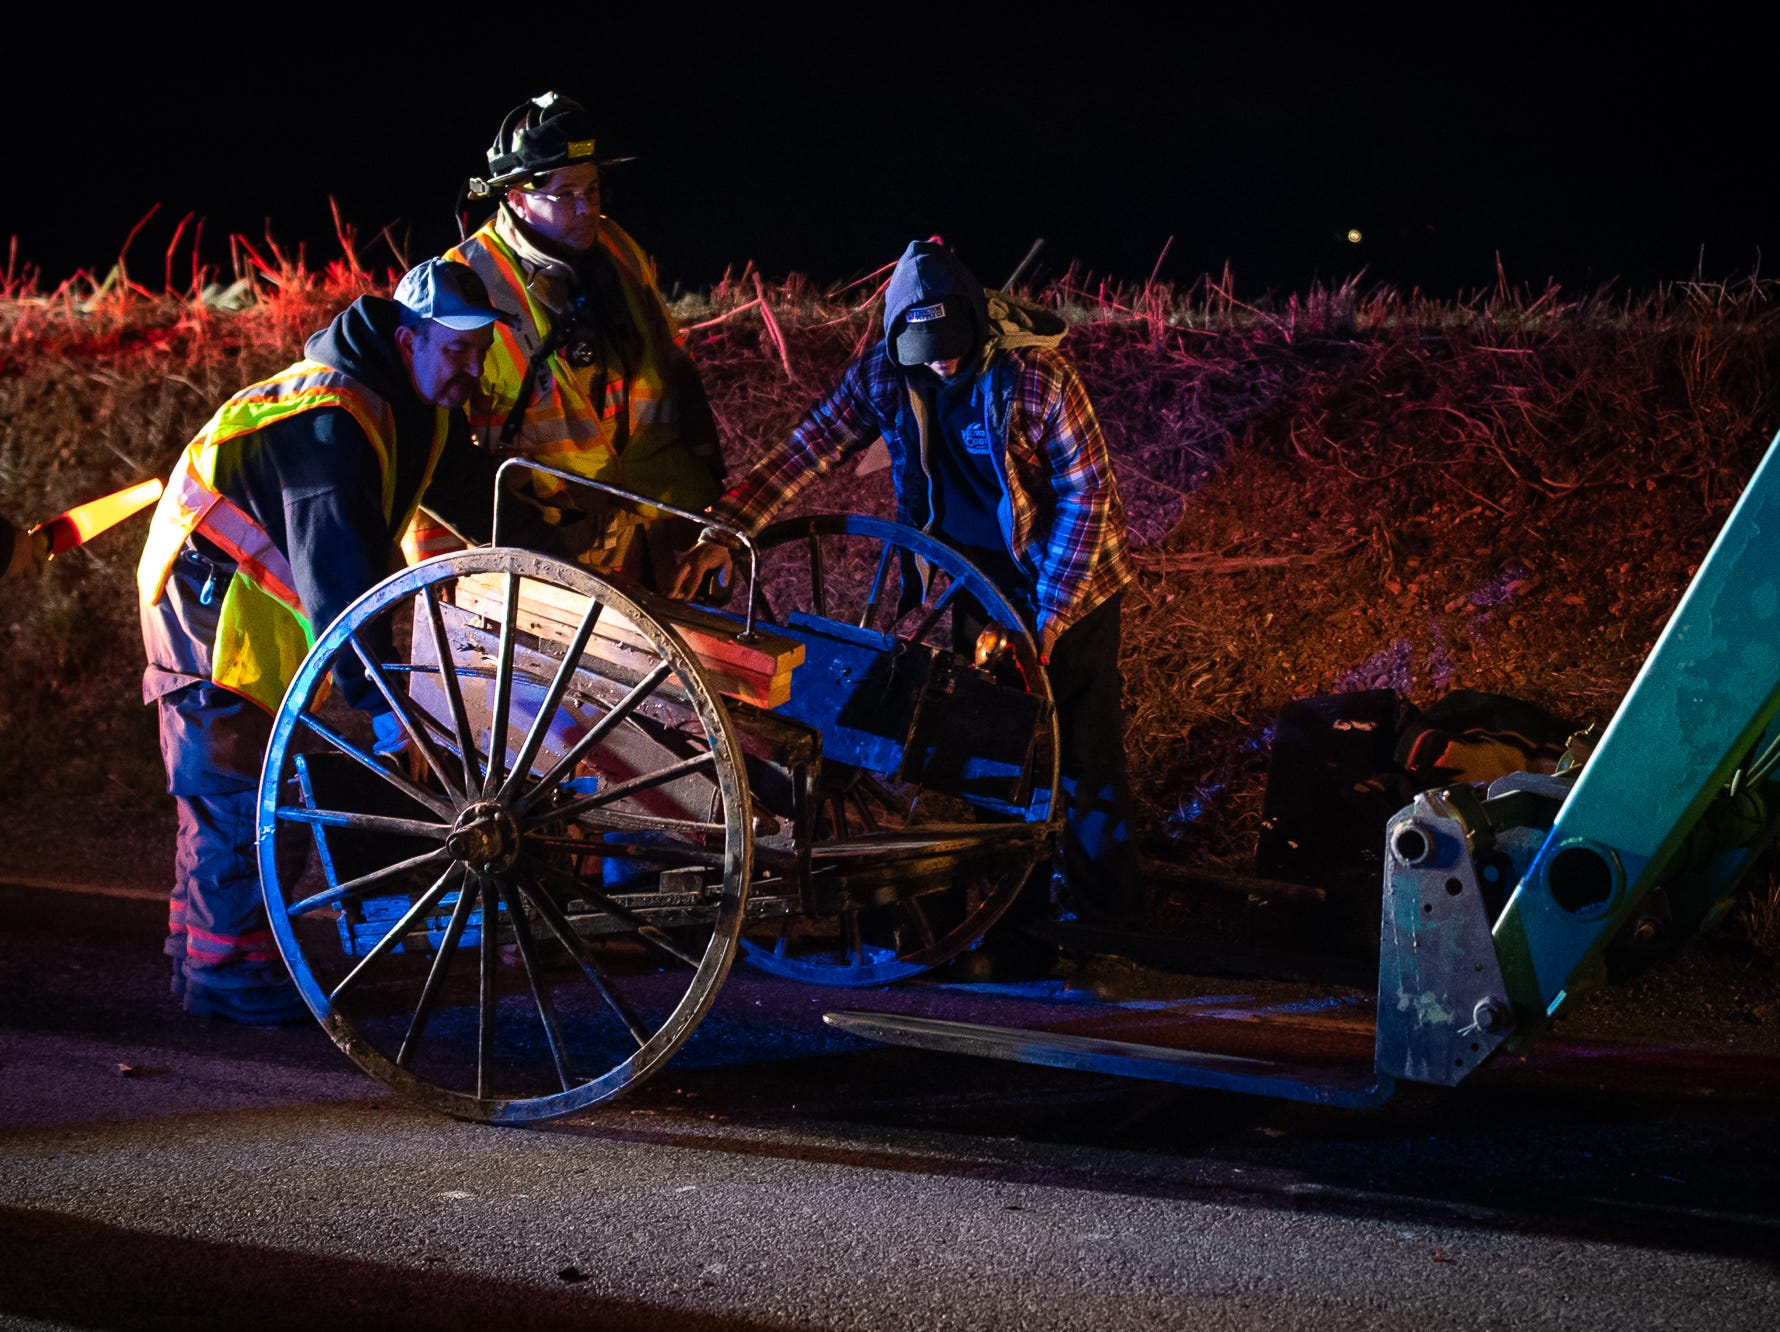 Firefighters help several people load a horse and buggy onto the forklift of a tractor at the scene of a vehicle vs a horse and buggy on the 3400 block of Jefferson Road , Wednesday, March 13, 2019, in Codorus Township. According to fire officials, there were no major injuries to people or the horse involved, which was caught after it ran from the accident.